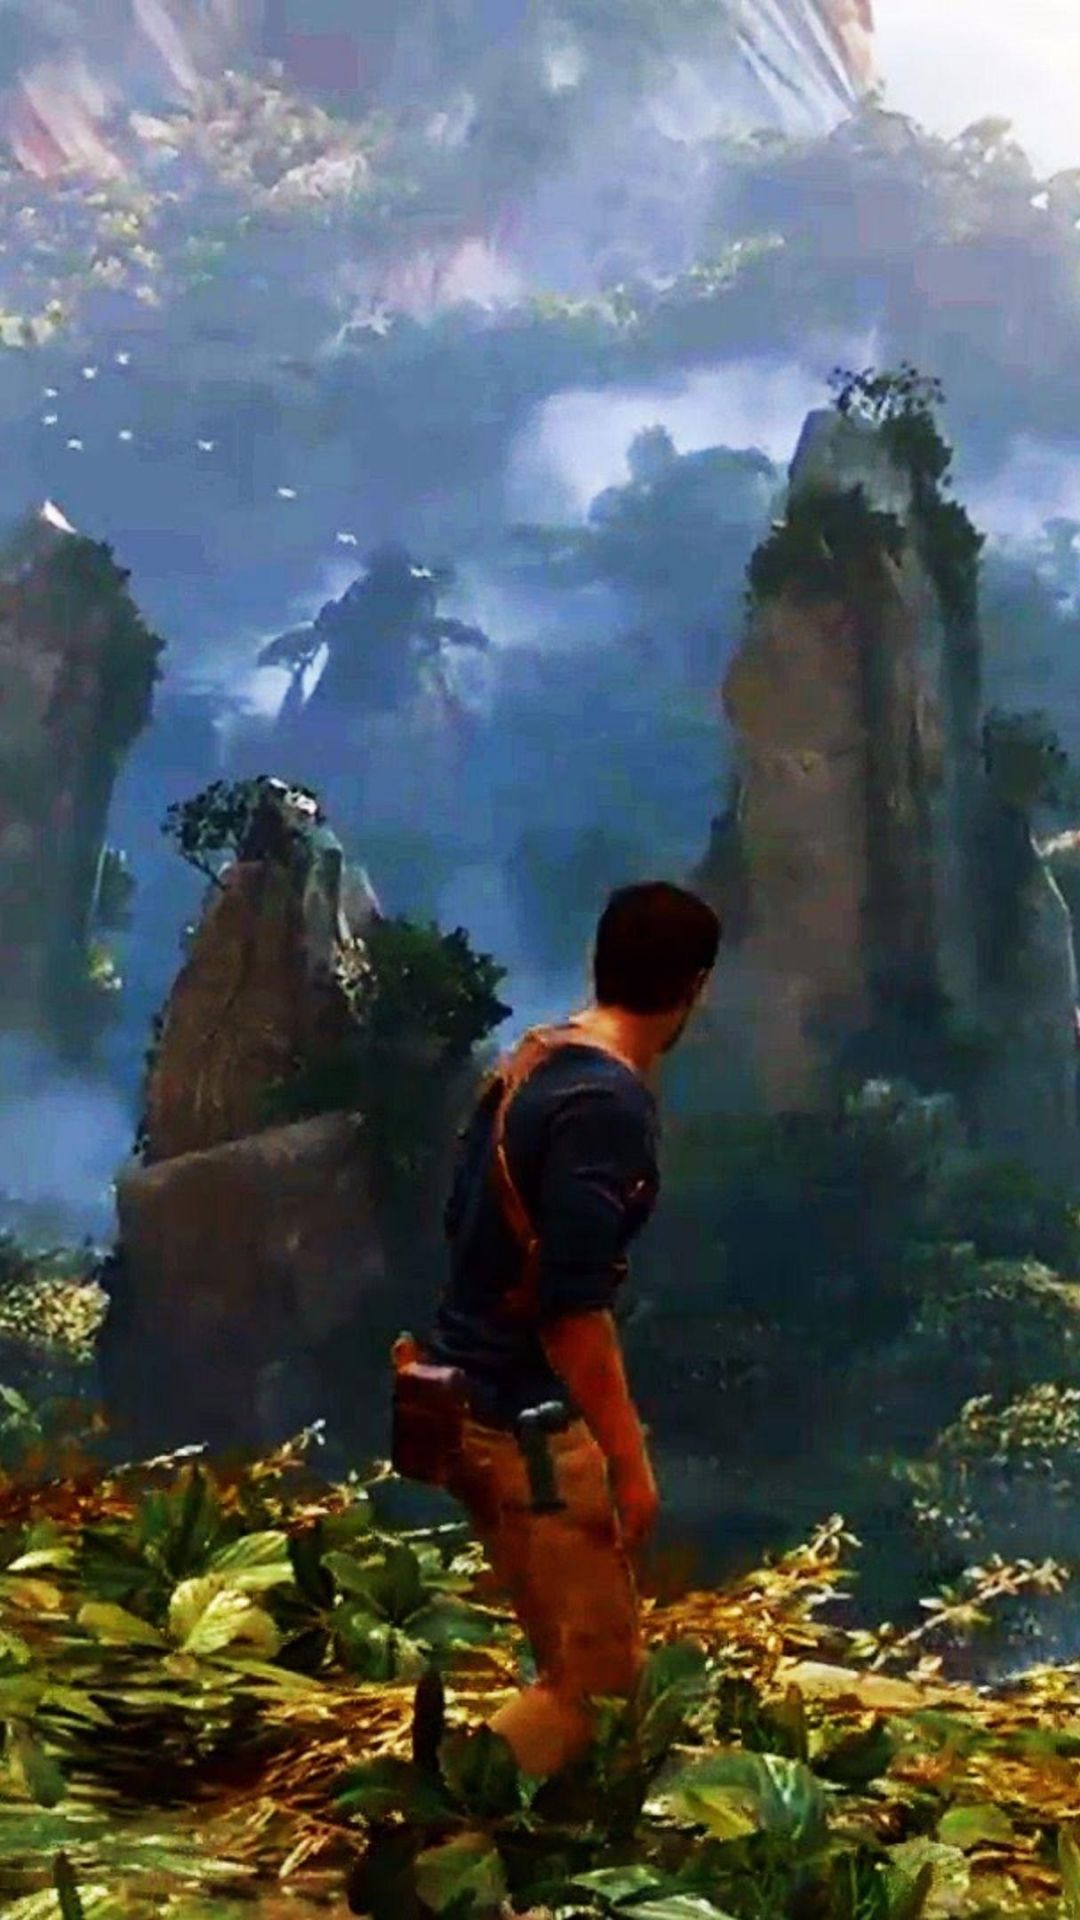 Uncharted 4 Wallpaper Ios Uncharted 4 Wallpaper Android In